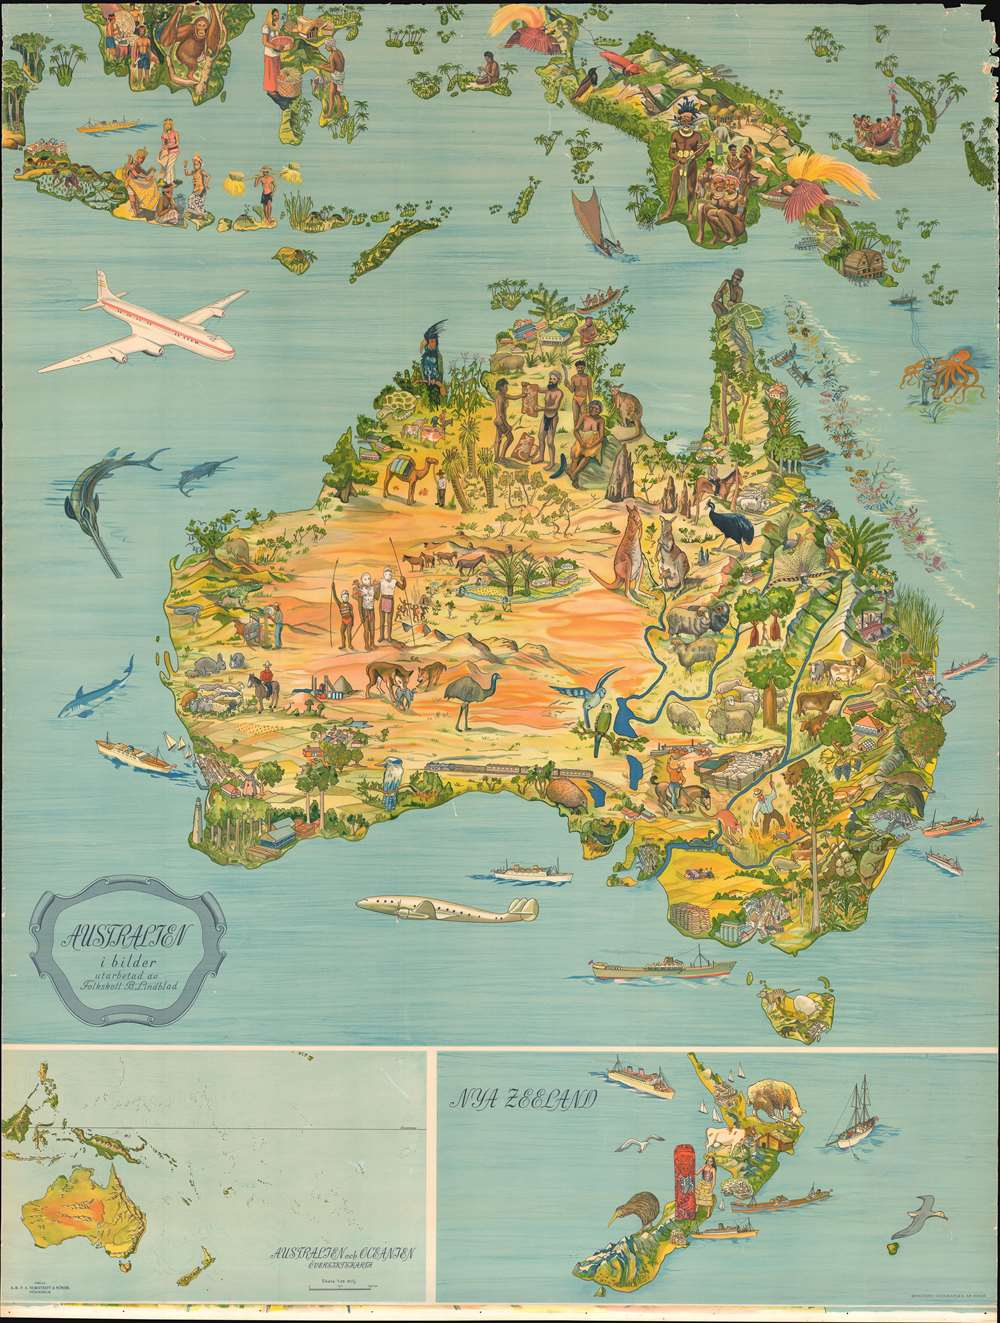 Australia To New Zealand Map.Details About 1947 Lindblad Pictorial Map Of Australia New Zealand And Indonesia